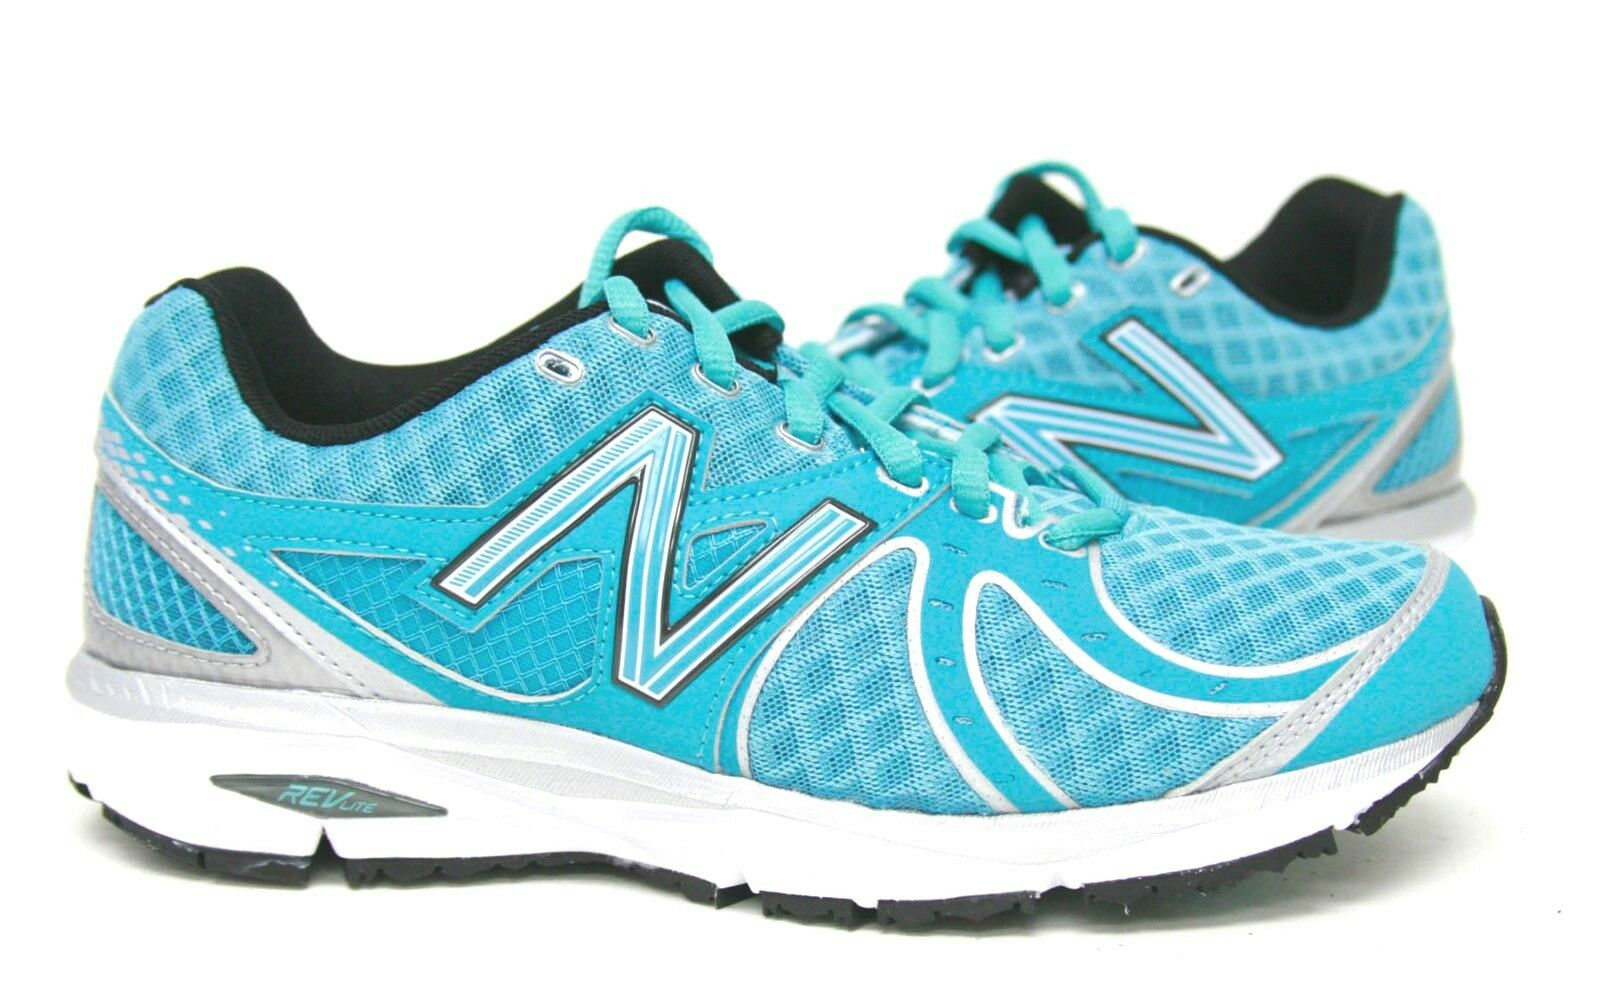 New Balance Wmns 790 Running Shoes W790CW2 Womens 6.5, 7, 7.5 available